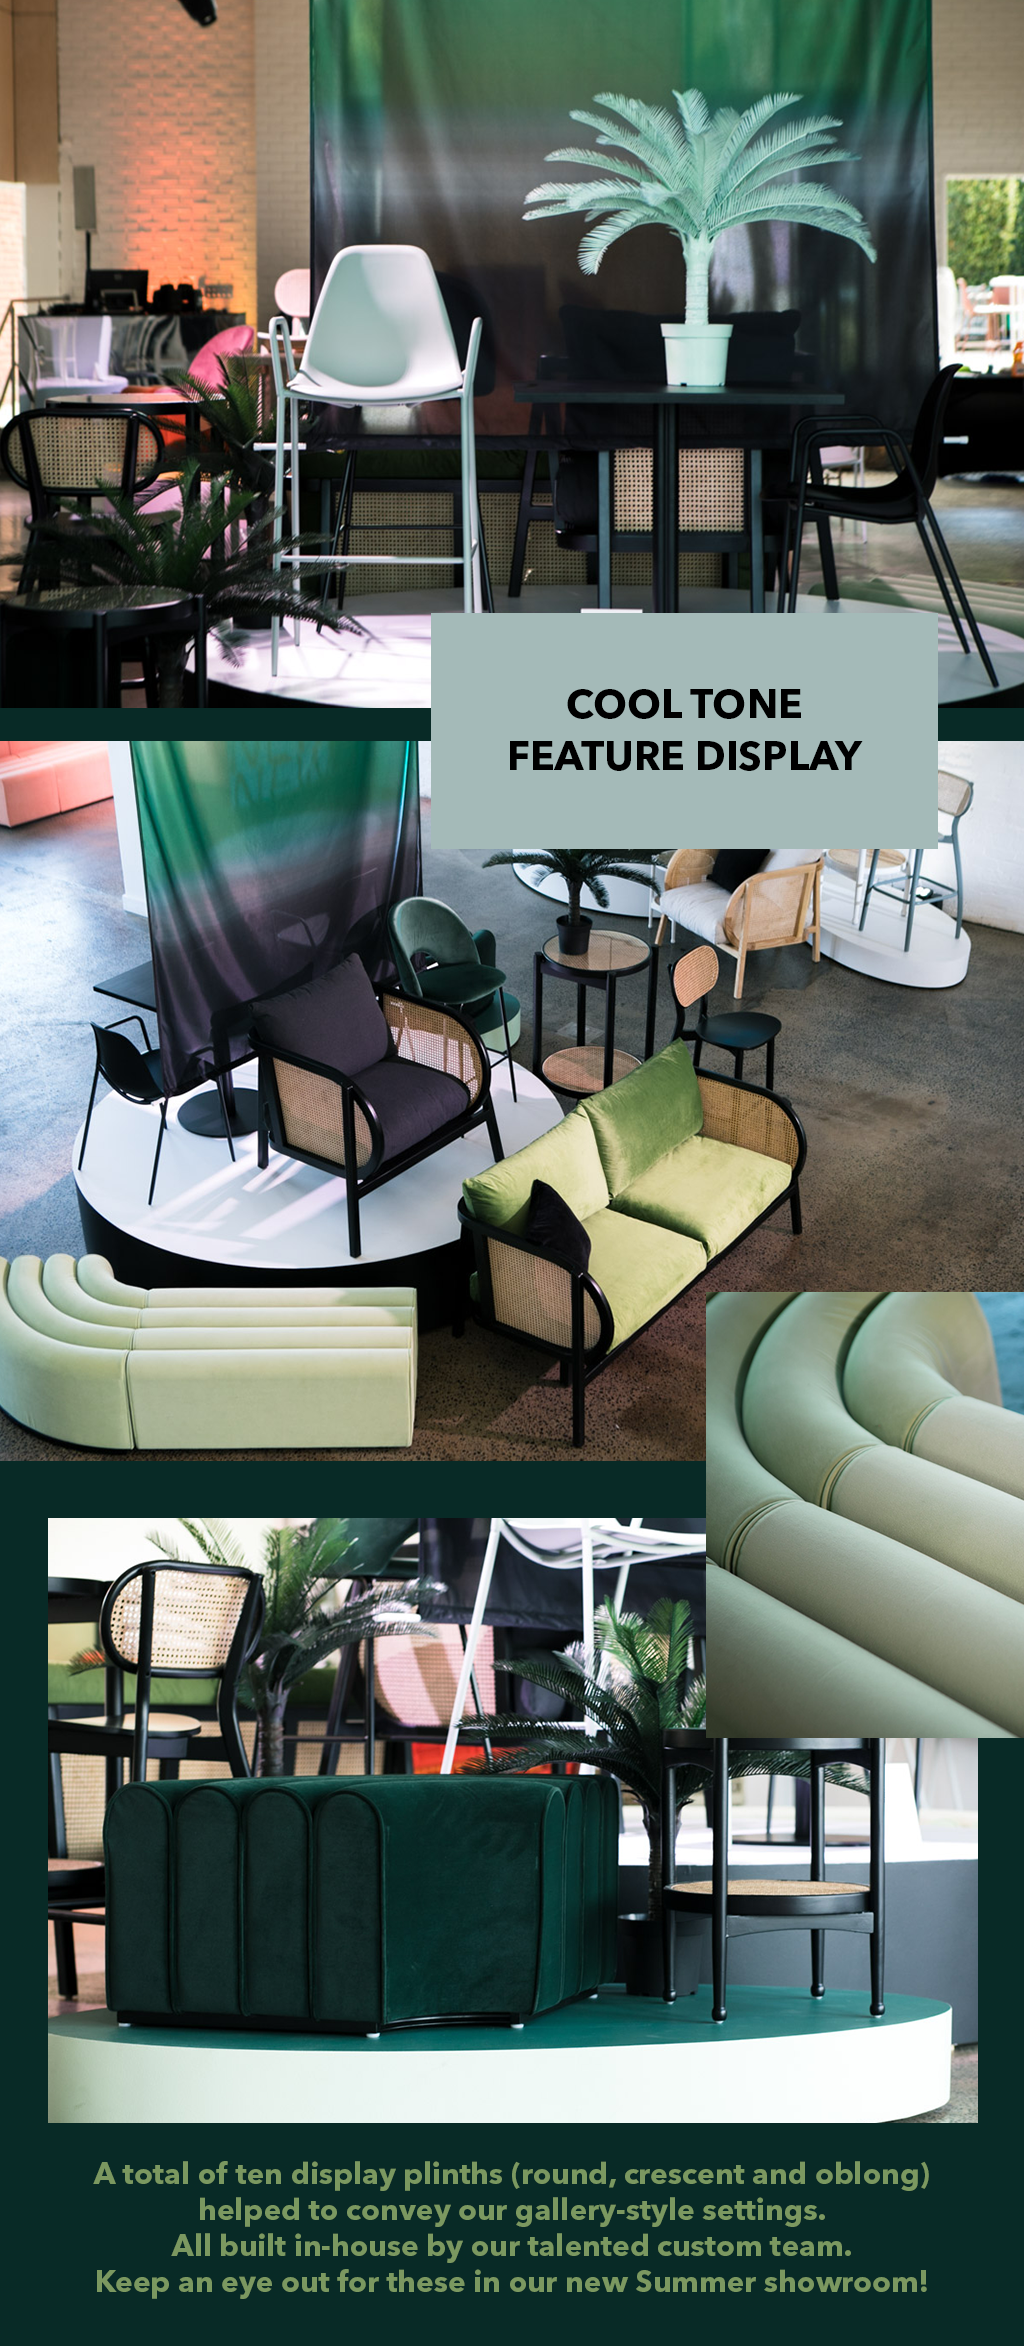 DEH NEW COLLECTION LAUNCH_COOL TONE FEATURE DISPLAY